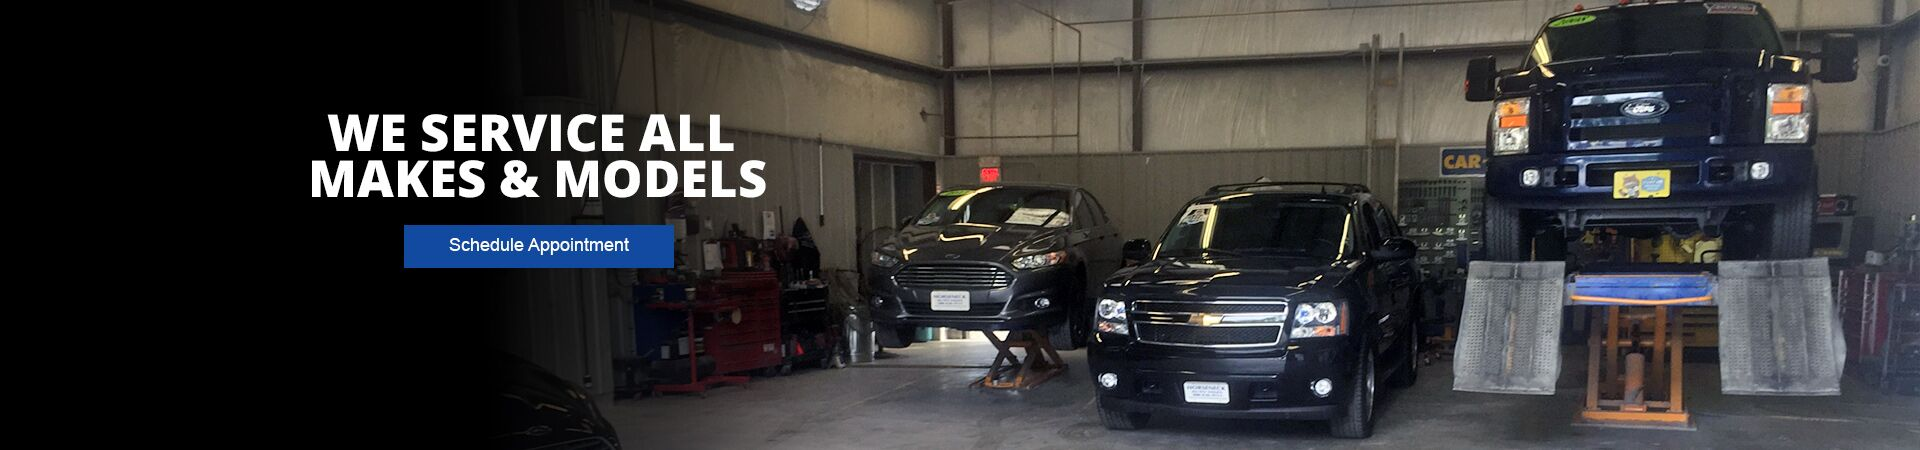 Schedule Service at Horseneck Auto Sales in Westport, MA